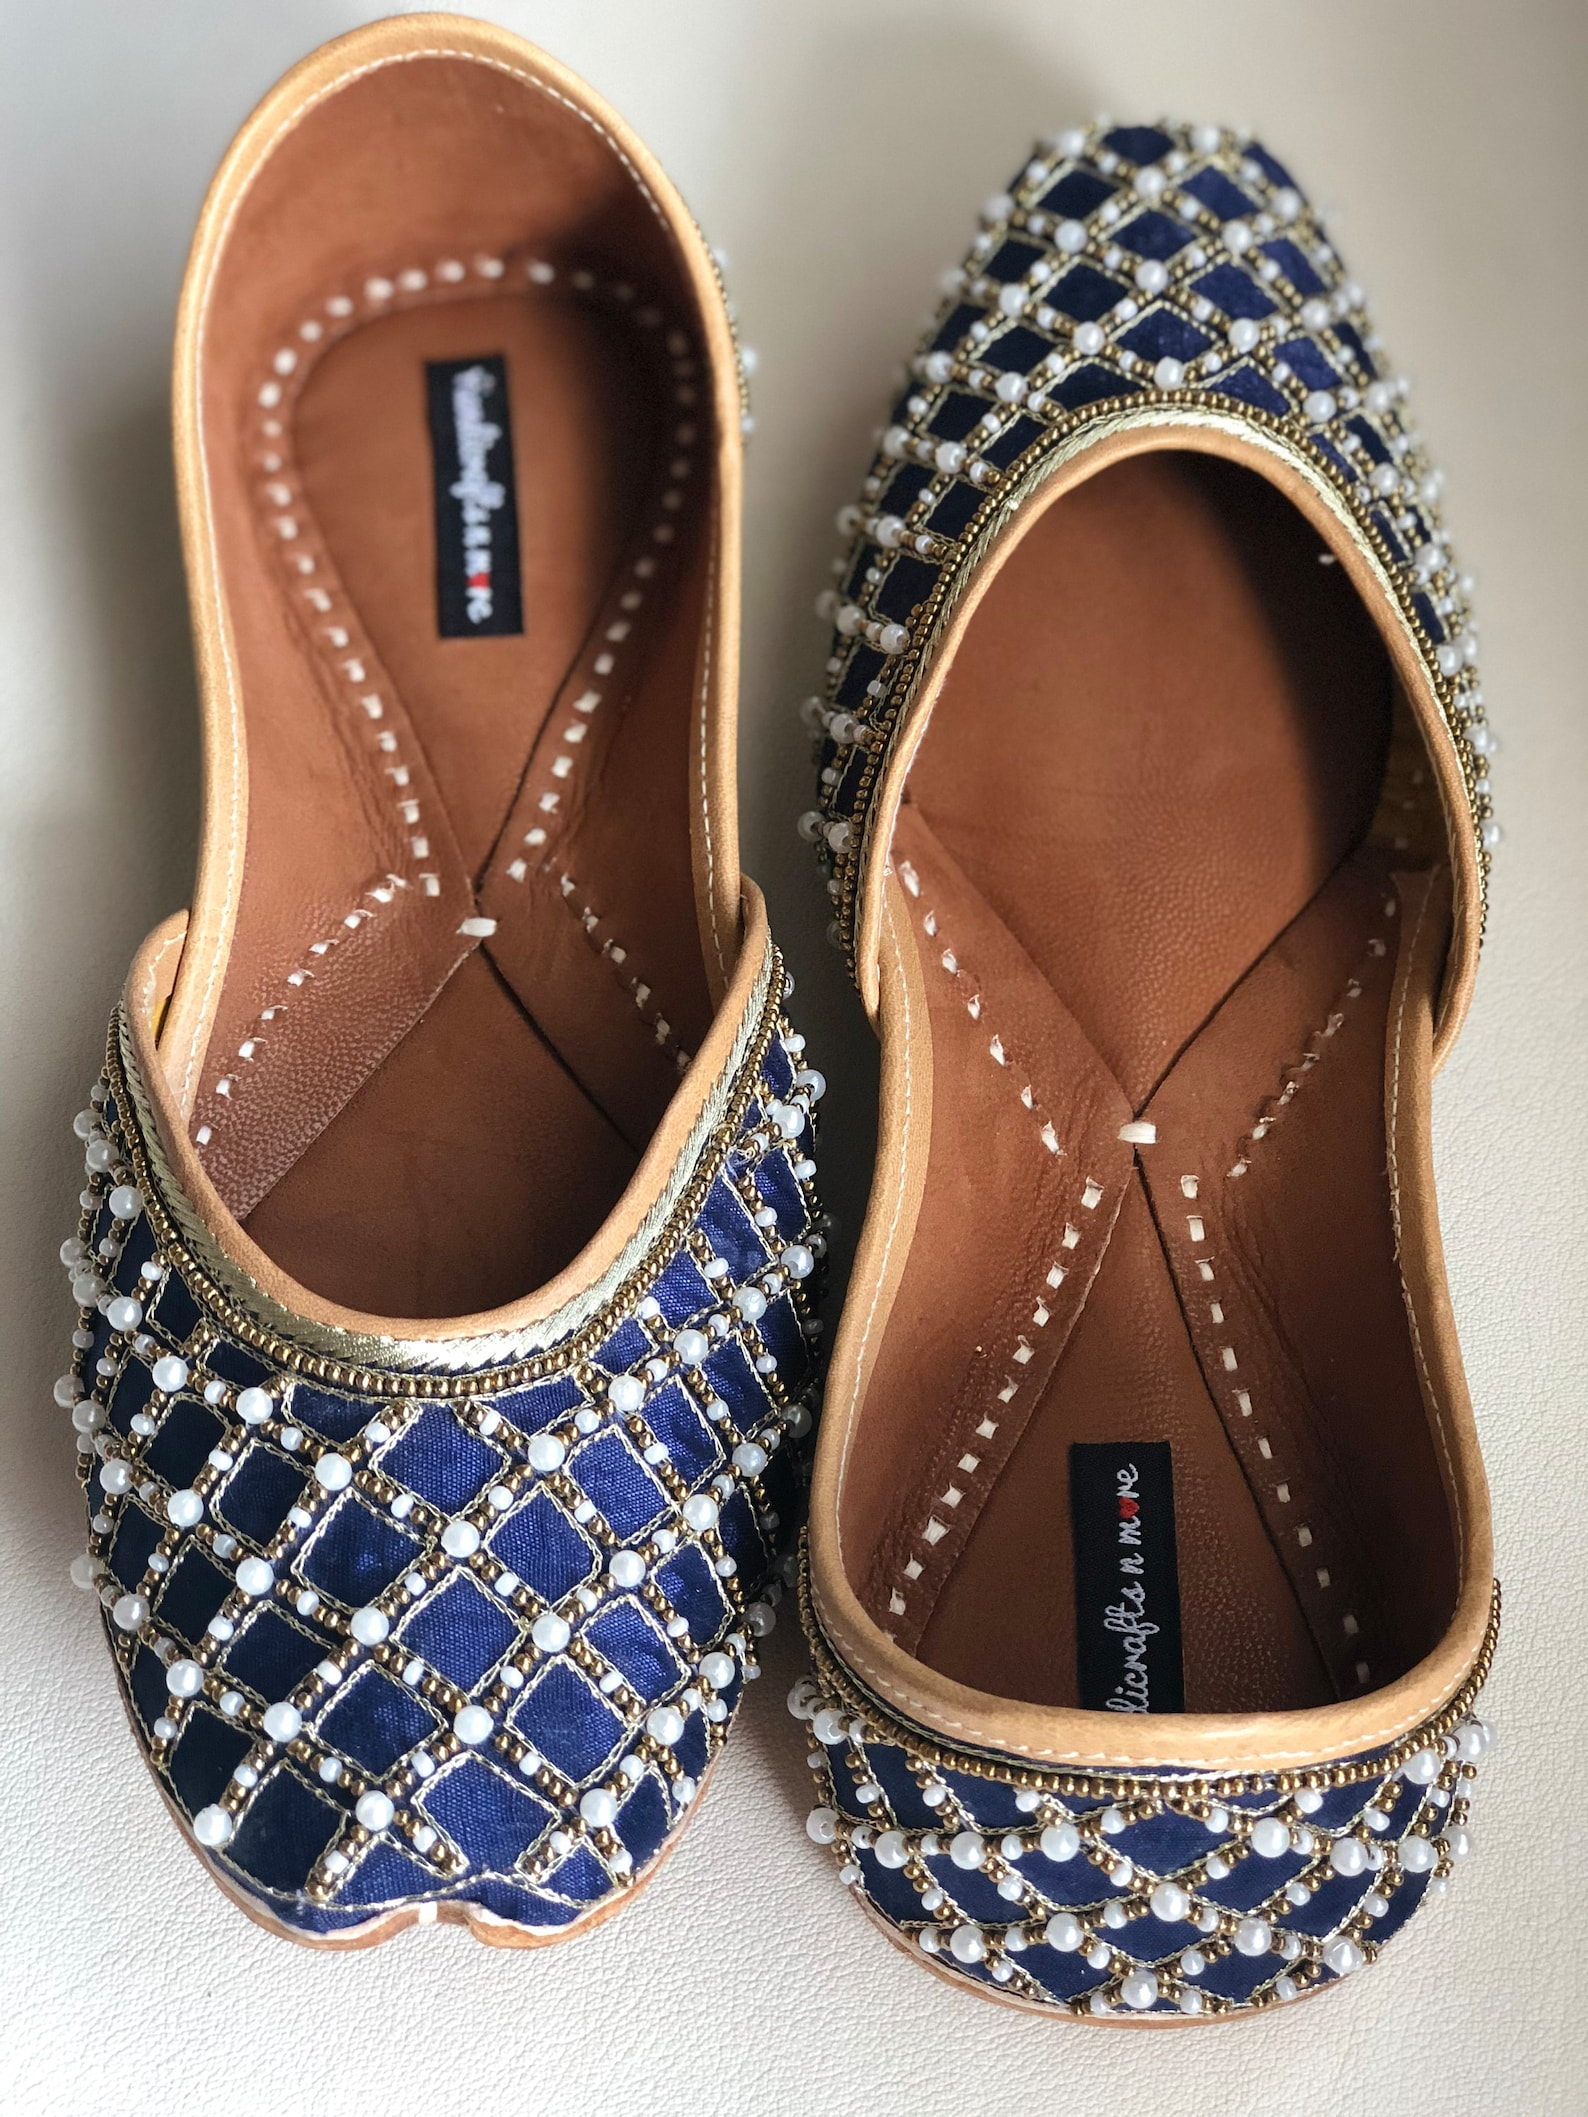 blue bridal shoes, indian ethnic juttis, embellished wedding shoes, white beaded punjabi juttis, indian footwear, blue ballet sh